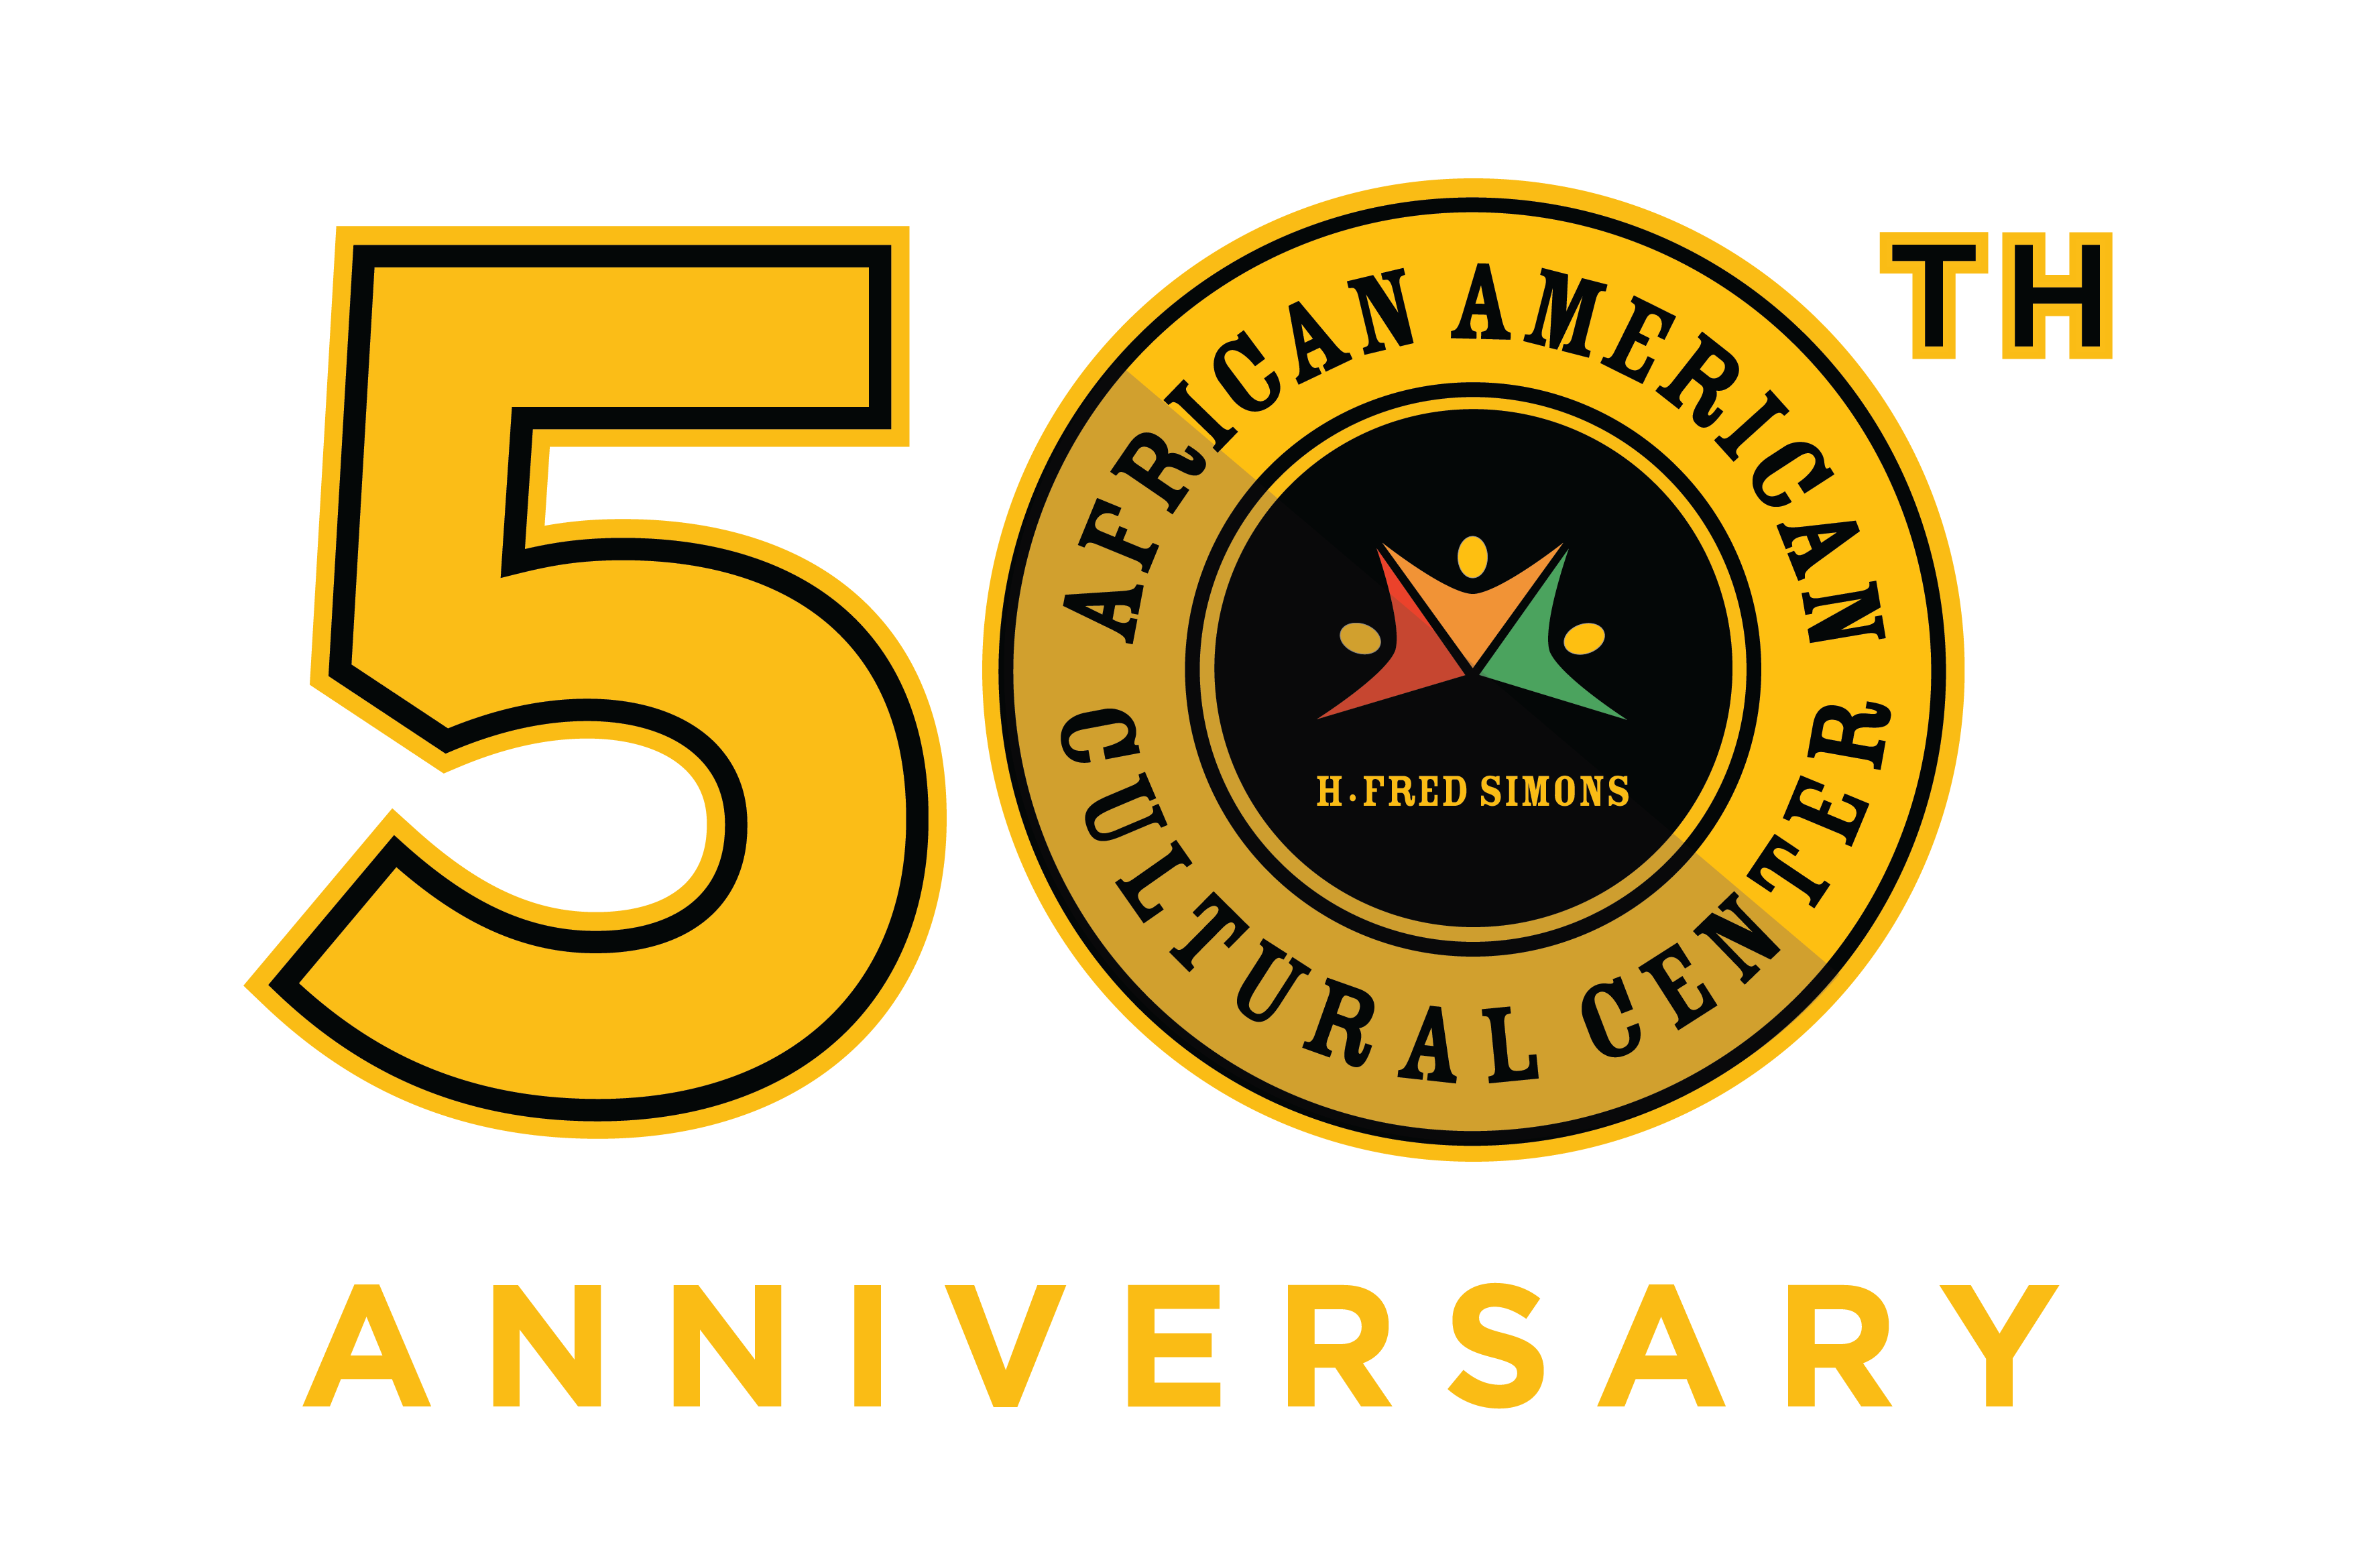 African American Cultural Center 50th Anniversary Logo